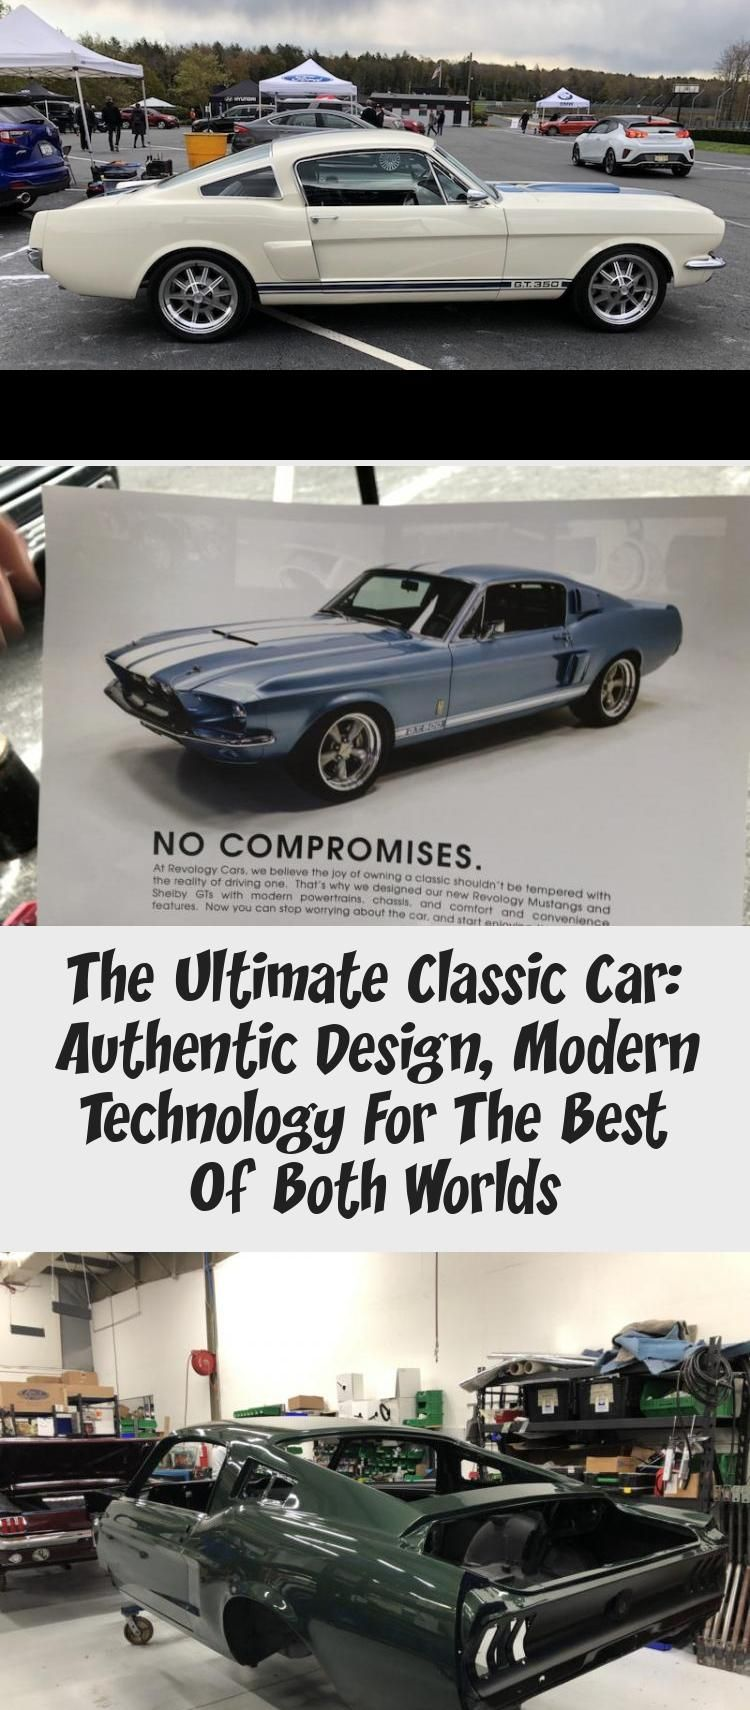 The Ultimate Classic Car Authentic Design Modern Technology For The Best Of Both Worlds In 2020 Authentic Design Classic Cars Modern Technology